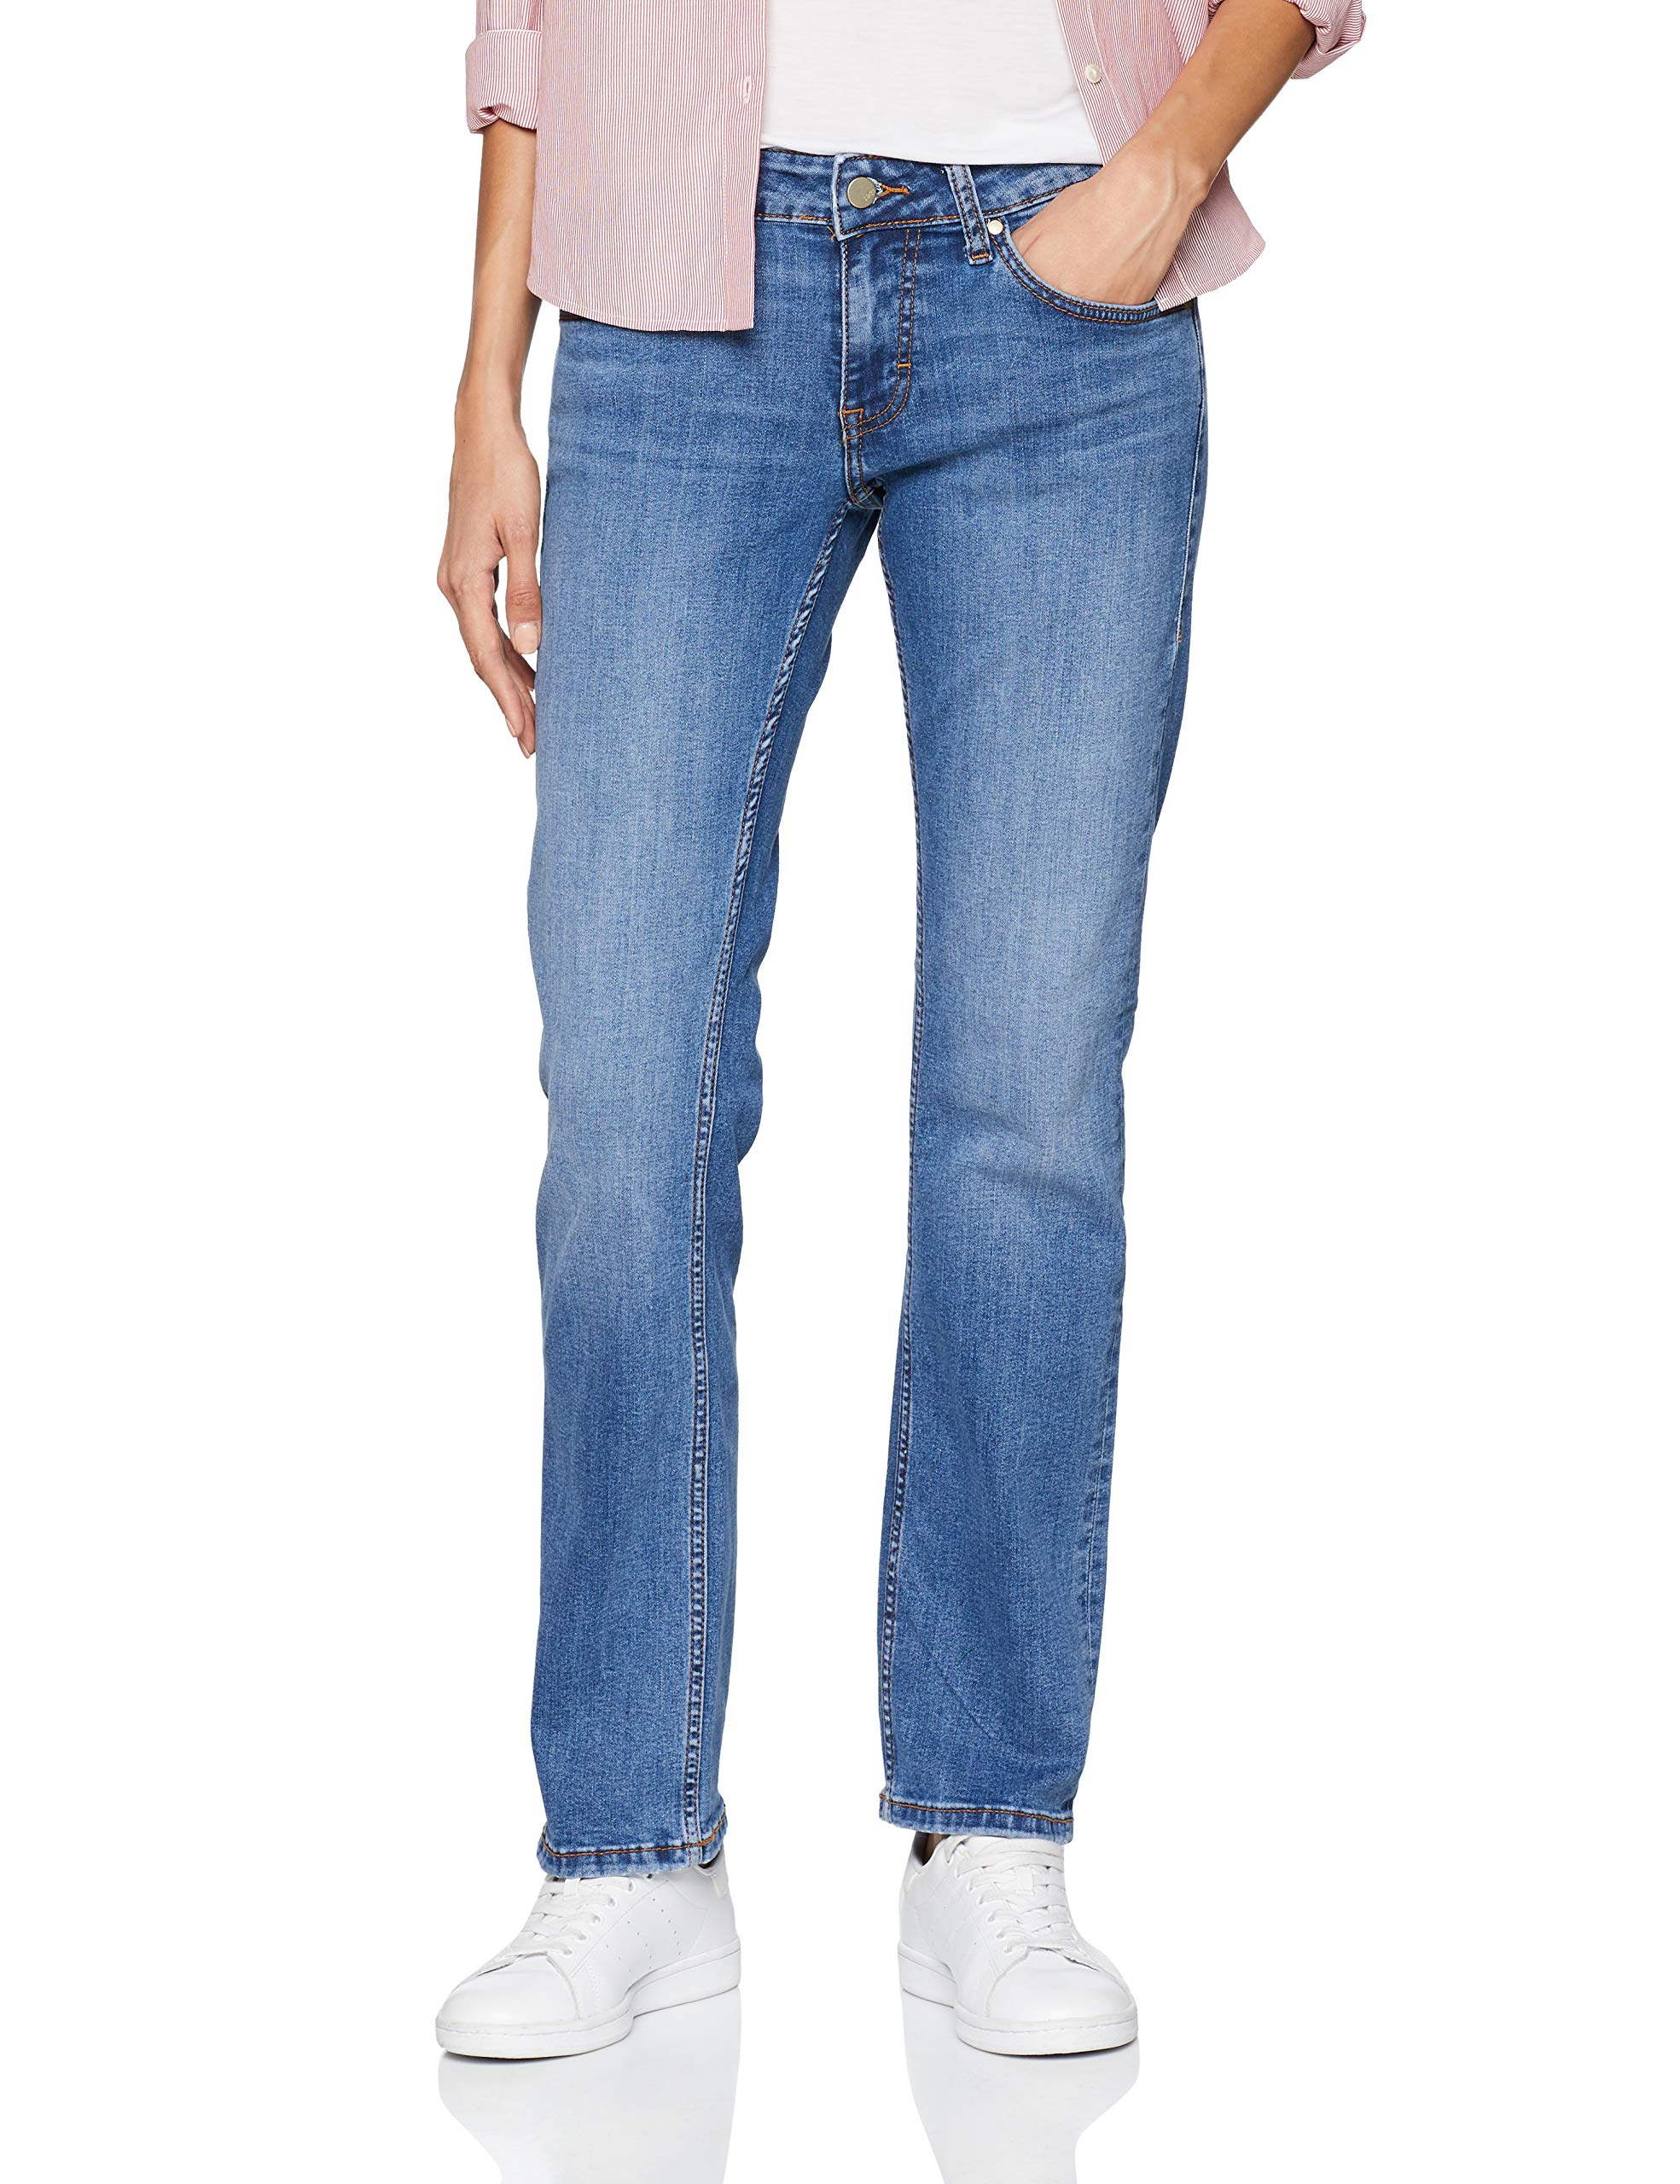 32Femme Fabricant30 Jean DroitBleumedium l32taille Sissy 412W30 Middle Straight Mustang vw80nmN